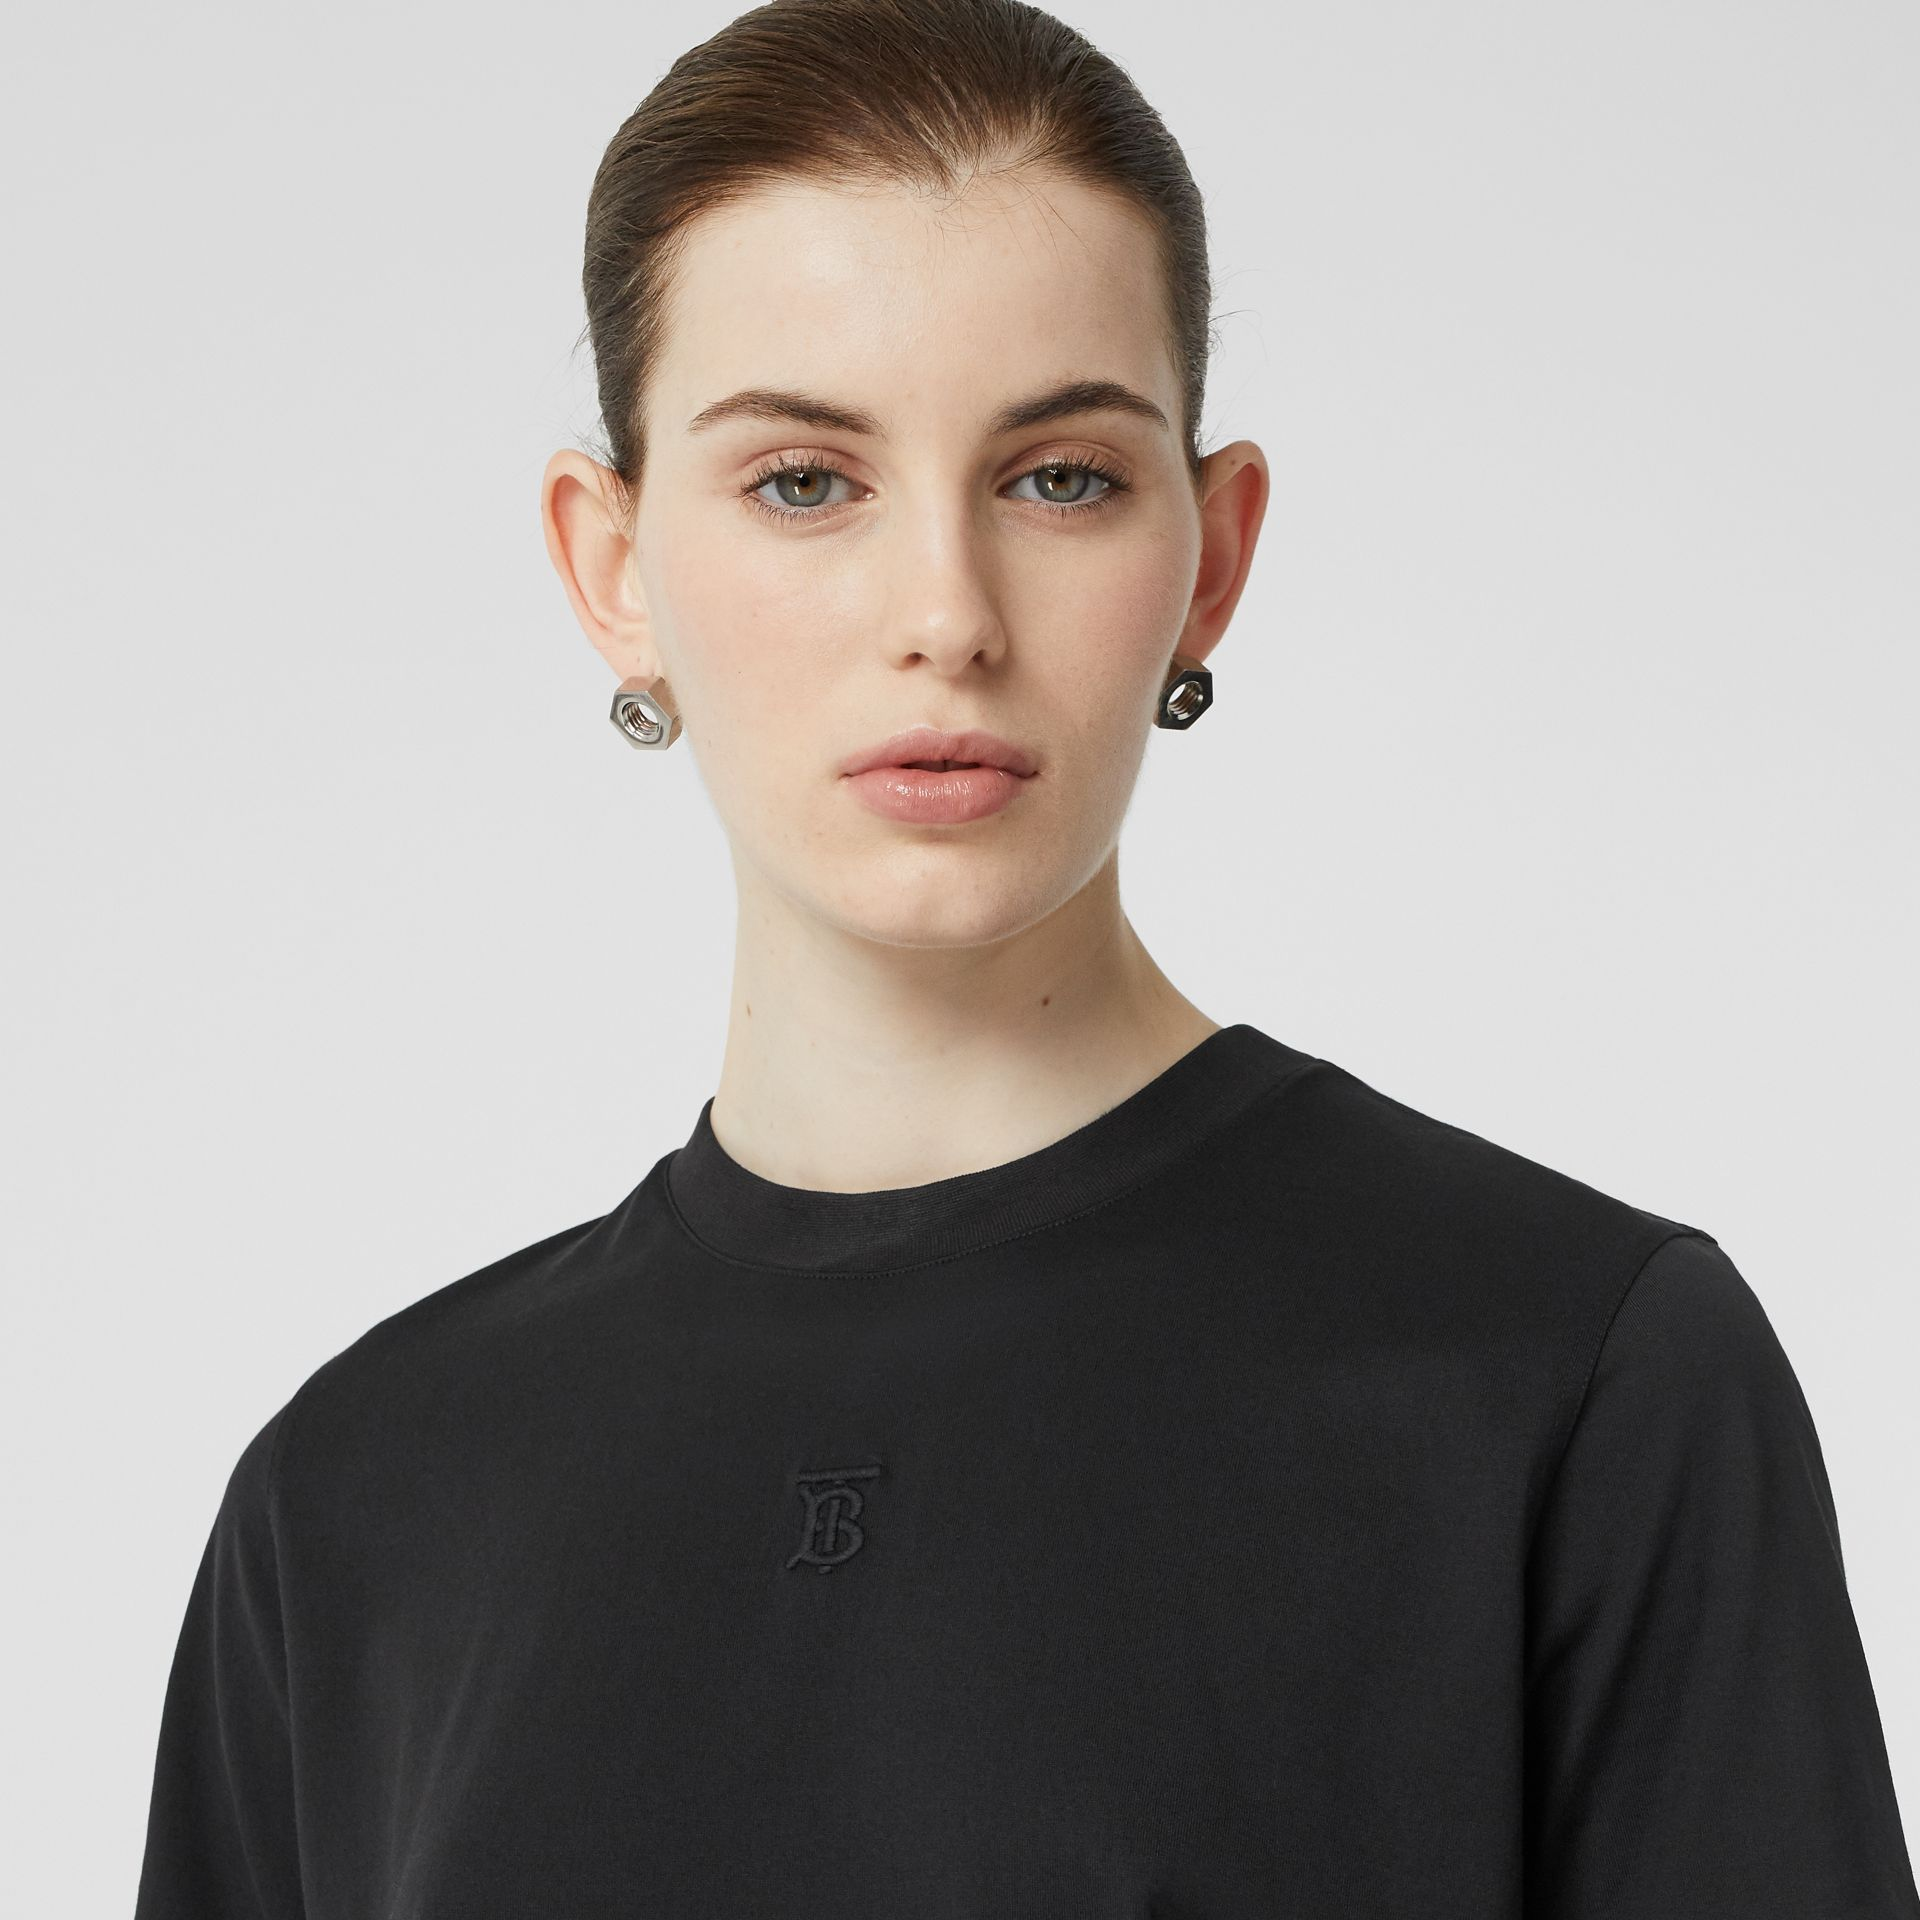 Monogram Motif Cotton T-shirt in Black - Women | Burberry Australia - gallery image 1